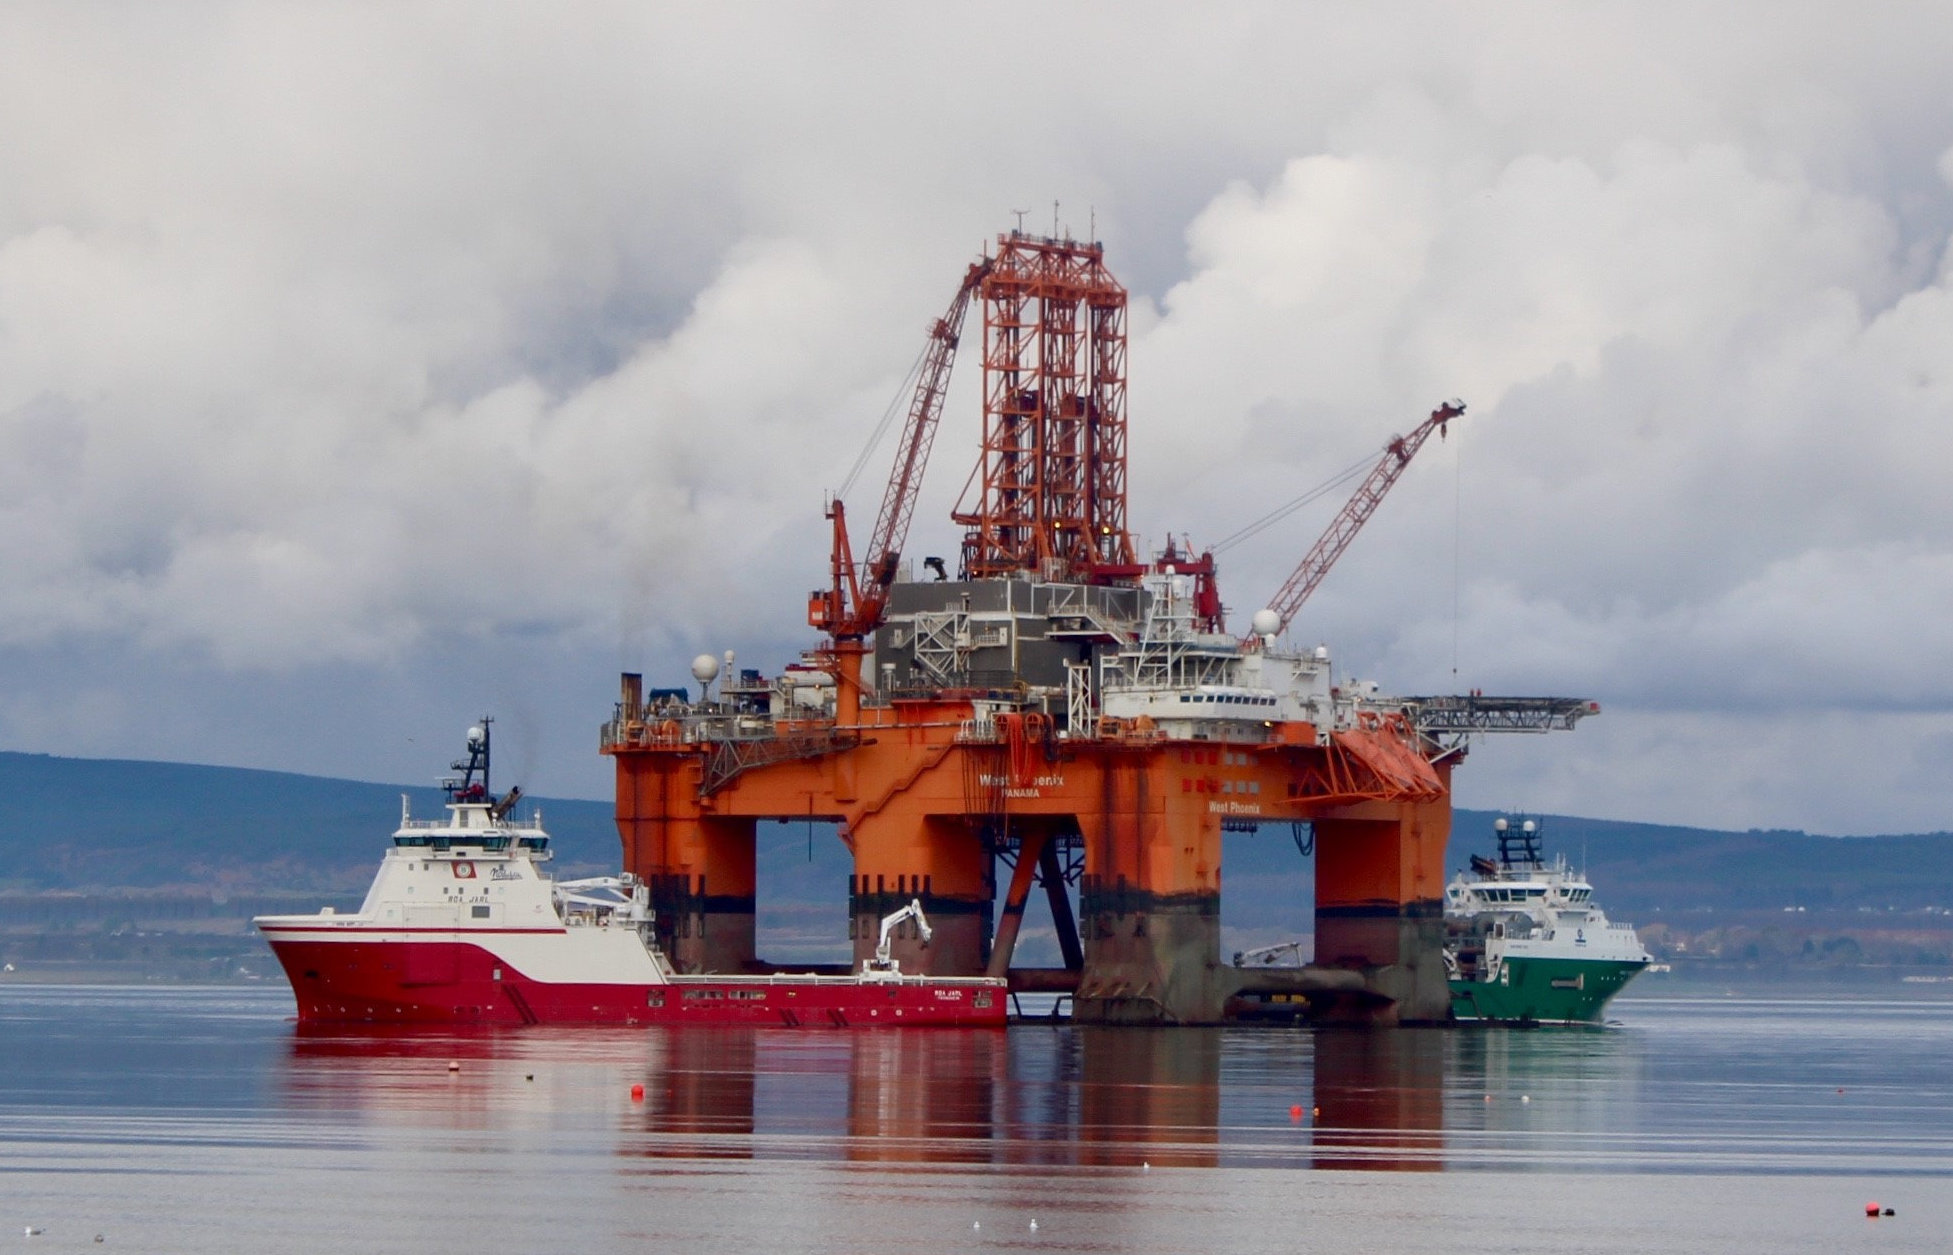 The West Phoenix, berthed in the Cromarty Firth, where she will have work done on her thrusters over the next two months